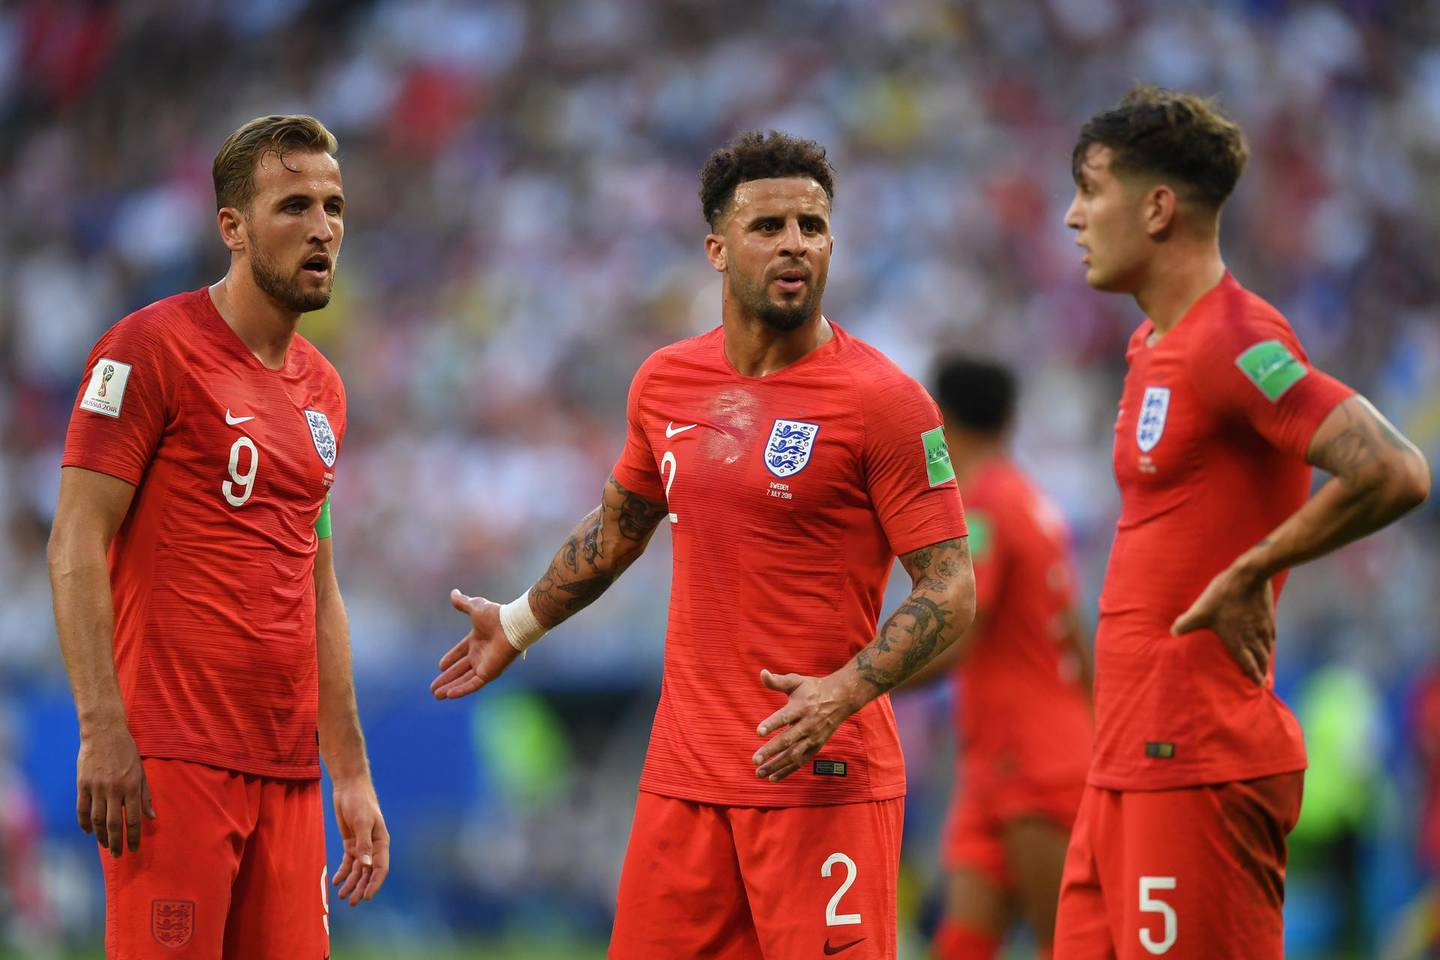 SAMARA, RUSSIA - JULY 07:  Harry Kane and Kyle Walker of England look on during the 2018 FIFA World Cup Russia Quarter Final match between Sweden and England at Samara Arena on July 7, 2018 in Samara, Russia.  (Photo by Matthias Hangst/Getty Images)